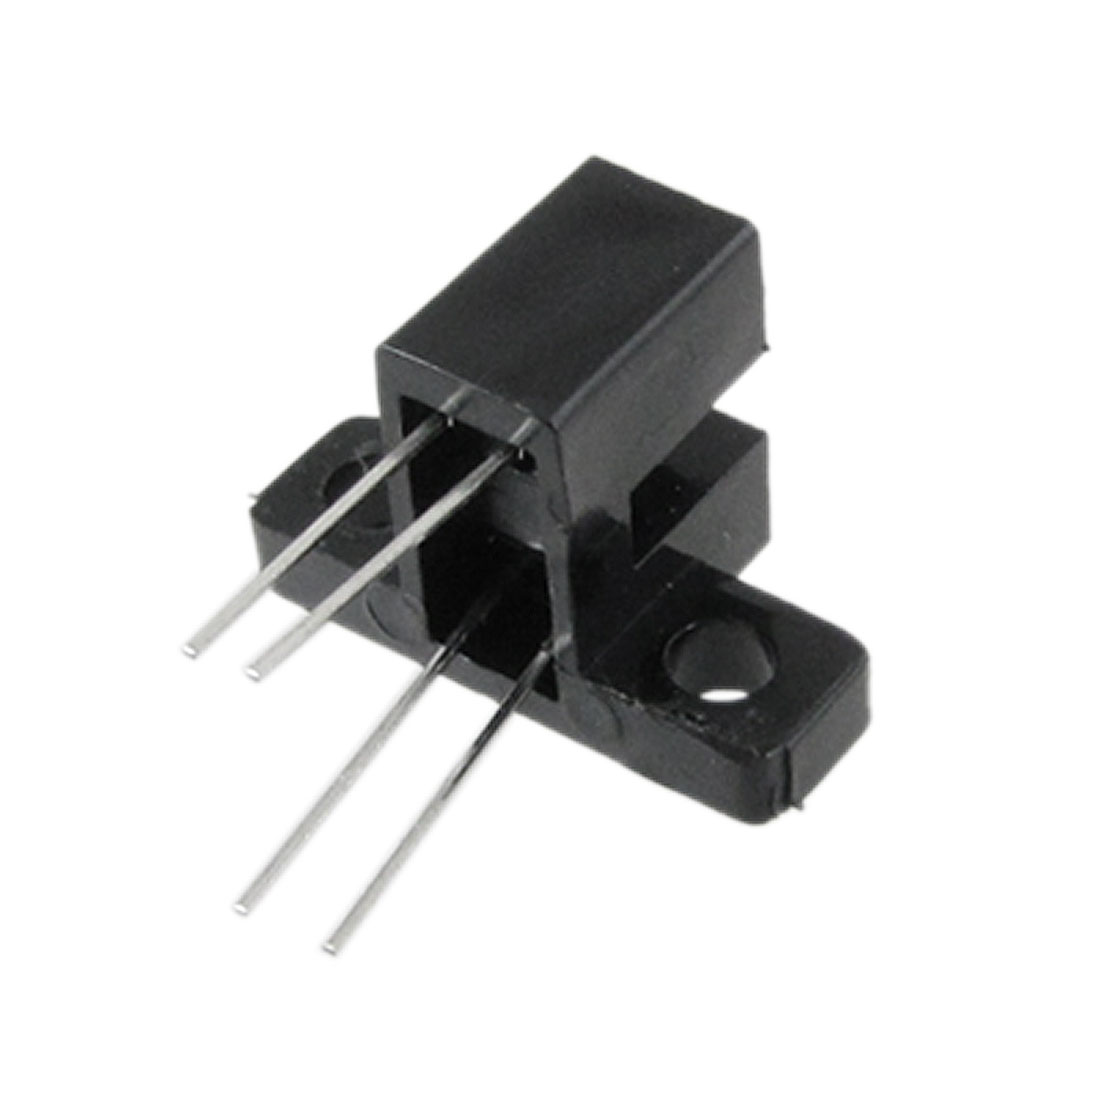 "10 Pcs 3/25"" Gap 4 Pins Slotted Optical Switch HY805 w Bracket"